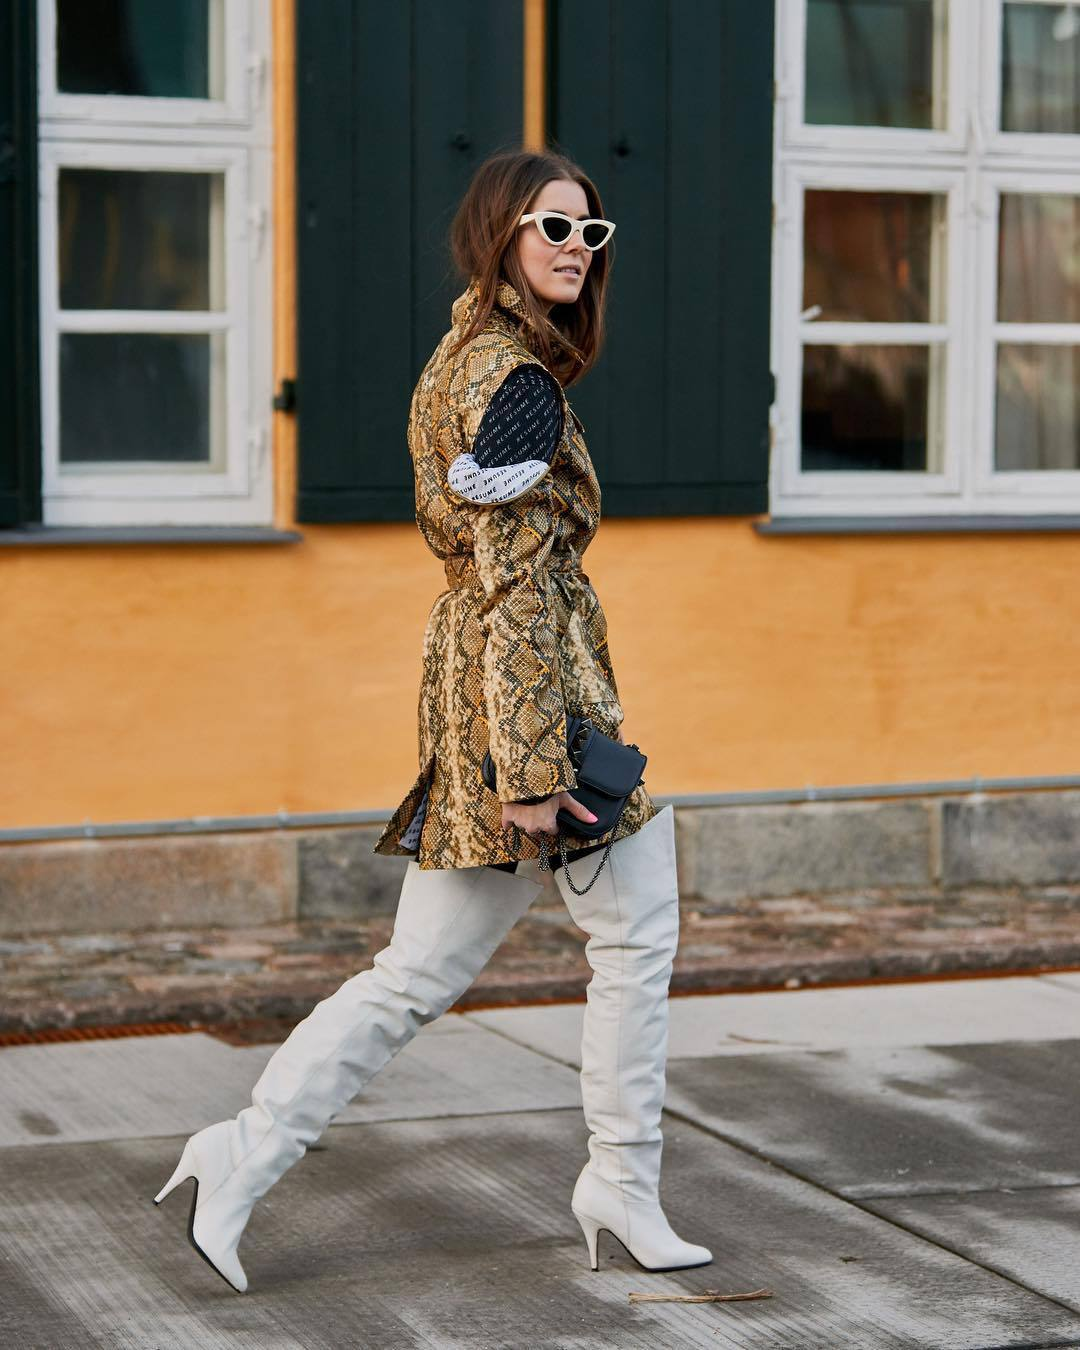 shoes over the knee boots heel boots white blouse tights snake print shirt dress black bag white sunglasses